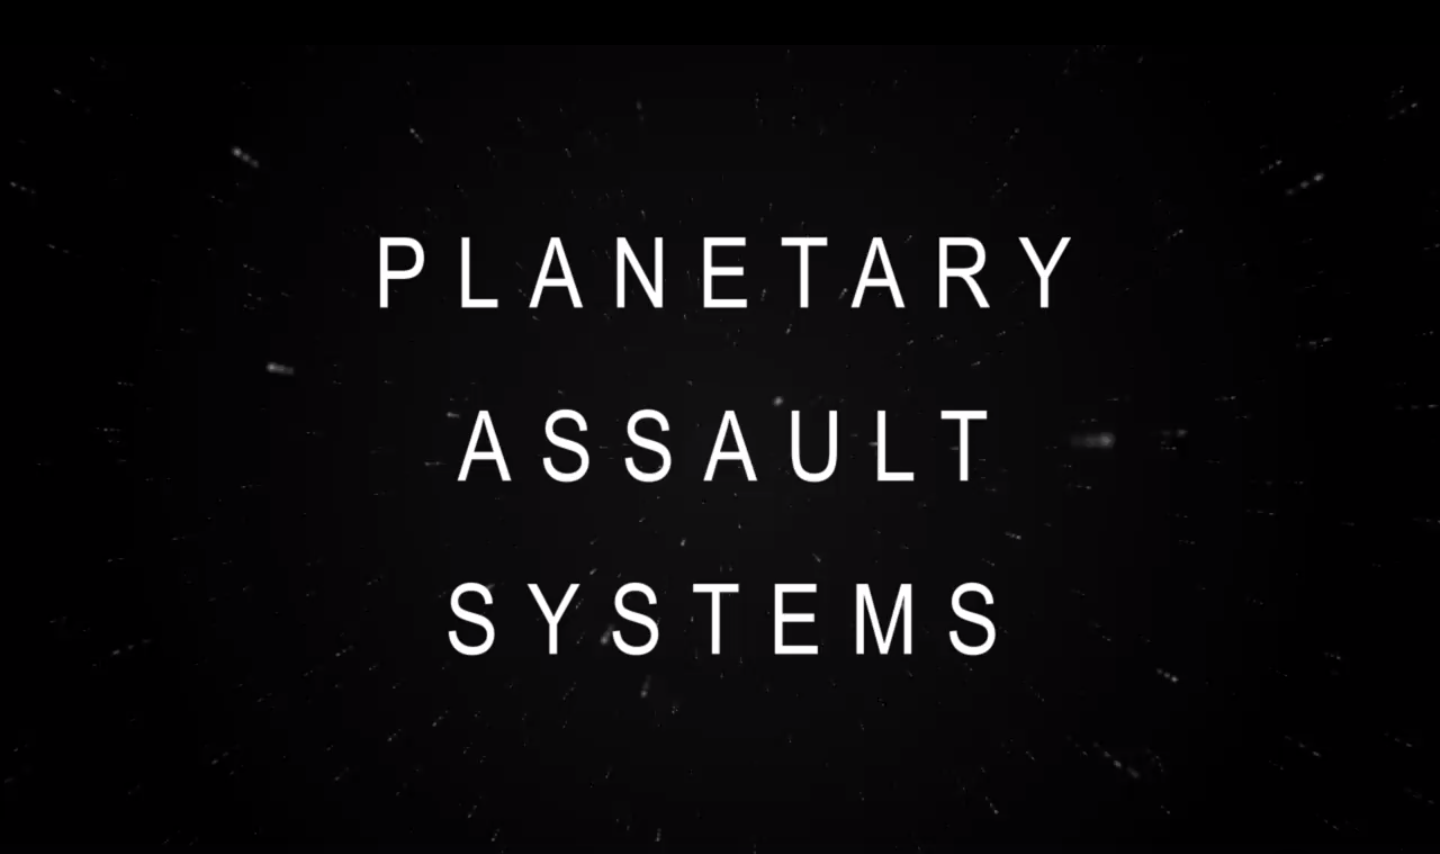 Planetary Assault Systems / Larix / Kim / Thomas Palec